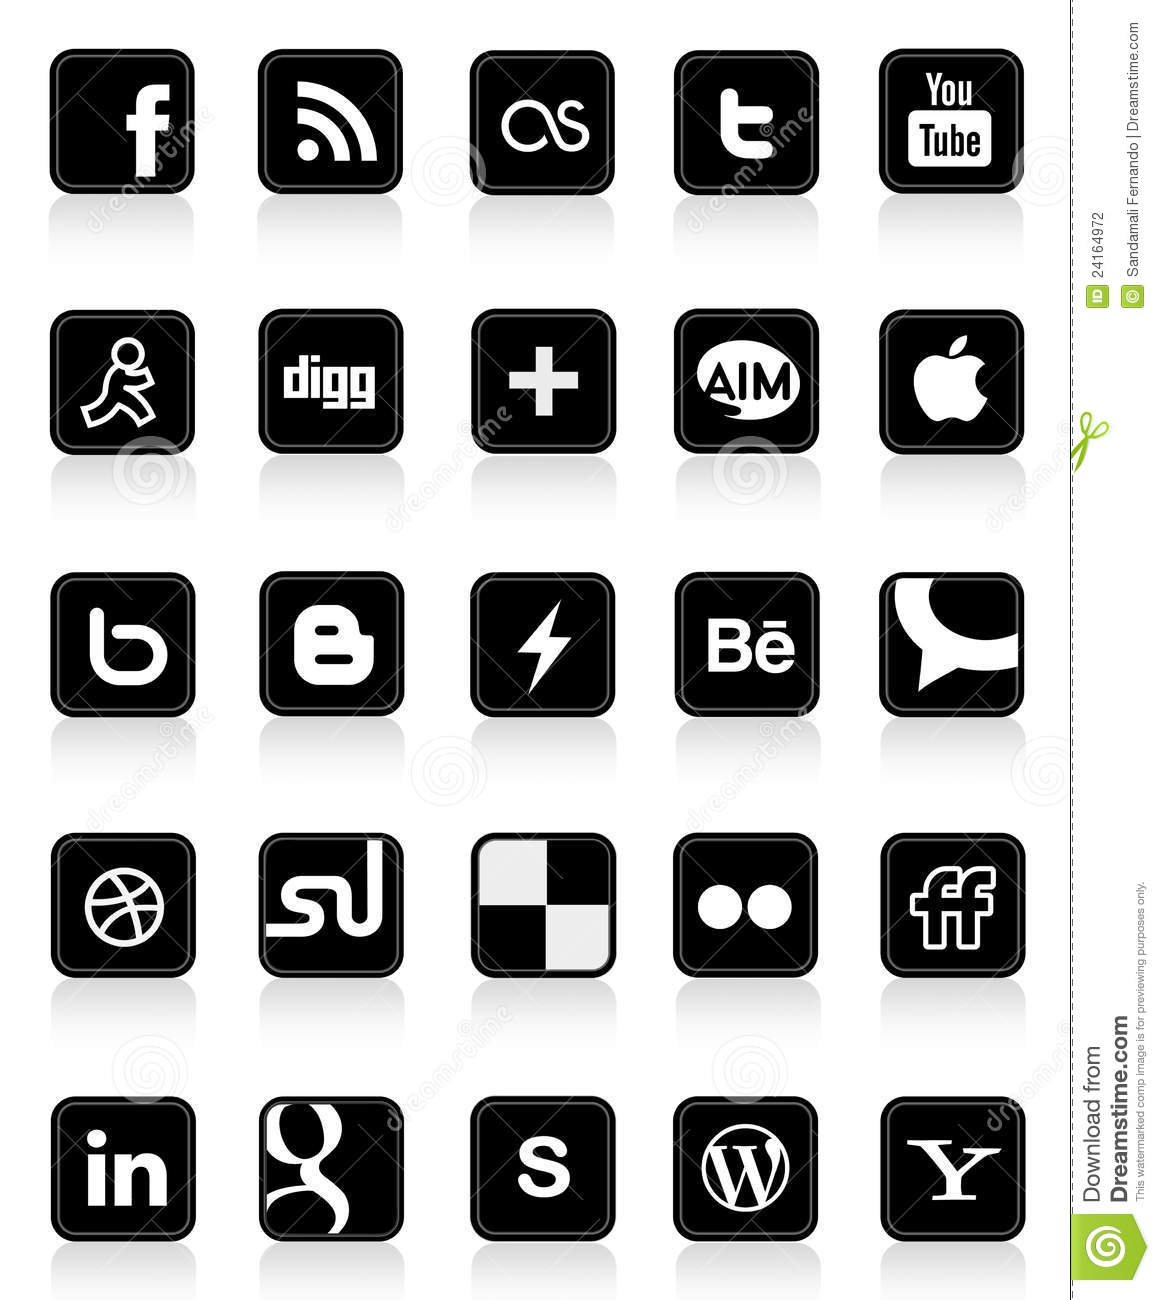 Social media clipart black and white transparent library Social Media Buttons 1 Editorial Photography - Image: 24164972 transparent library